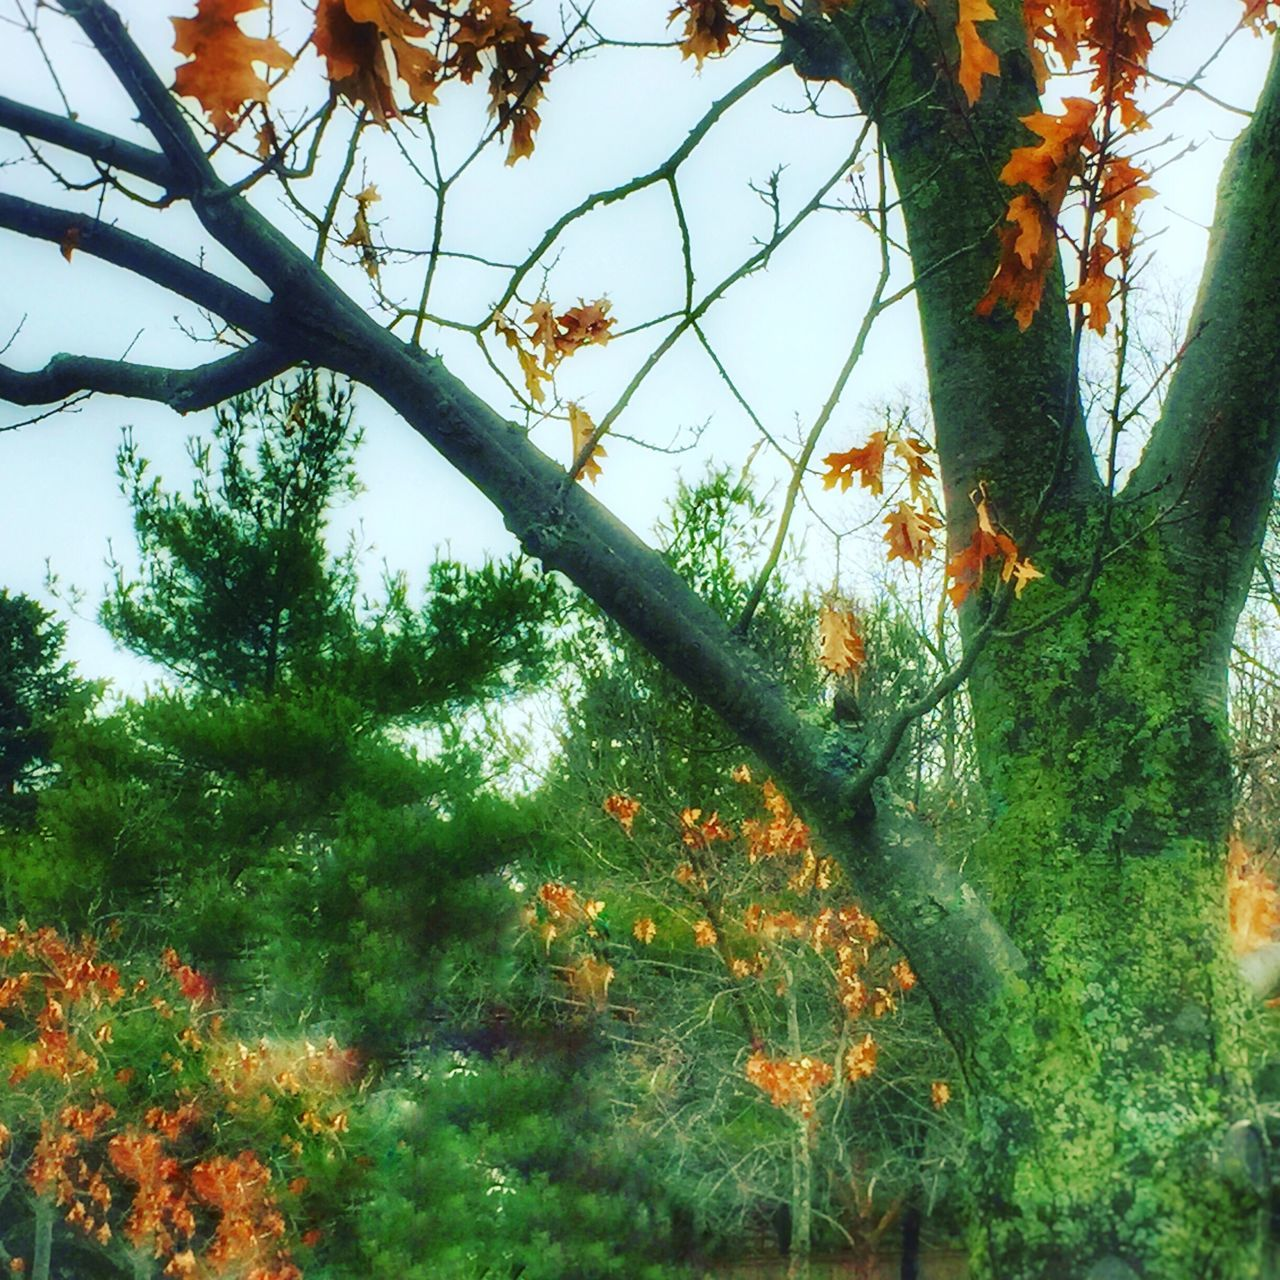 tree, growth, nature, green color, branch, no people, leaf, beauty in nature, day, autumn, plant, outdoors, forest, tranquil scene, low angle view, tranquility, tree trunk, scenics, sky